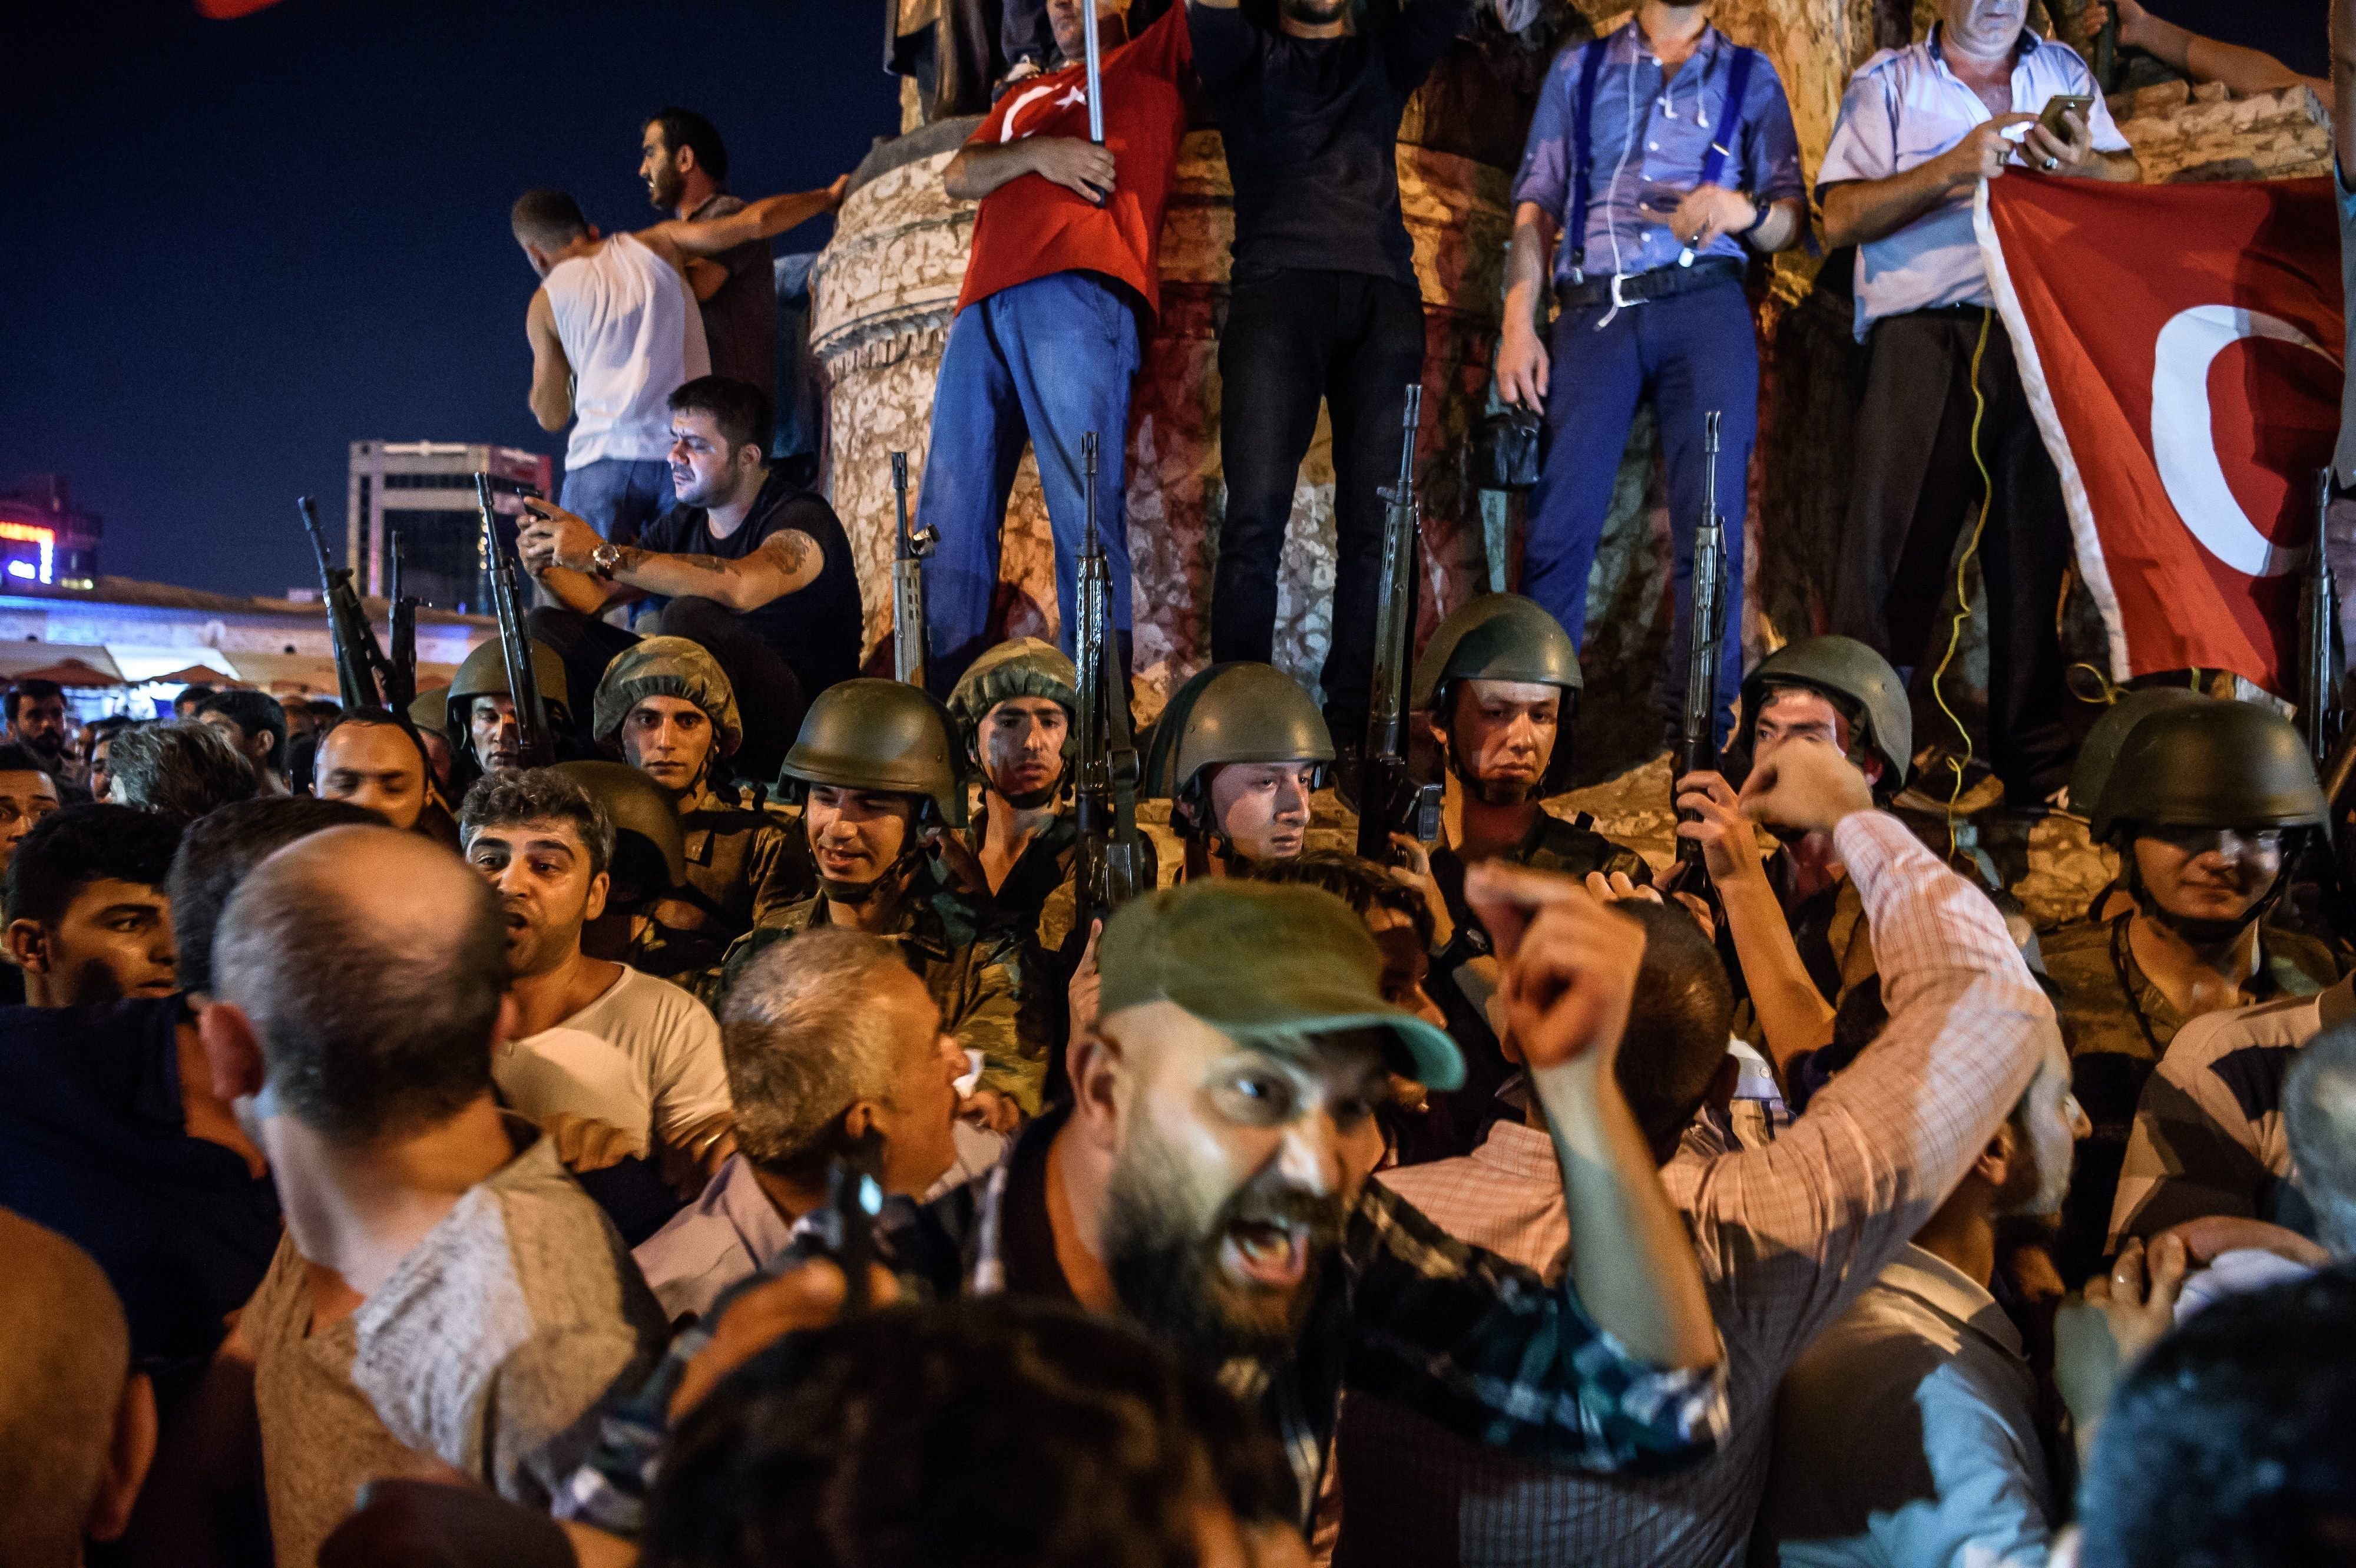 Turkish crowds surroundmilitary forces in Istanbul's Taksim square on Saturday